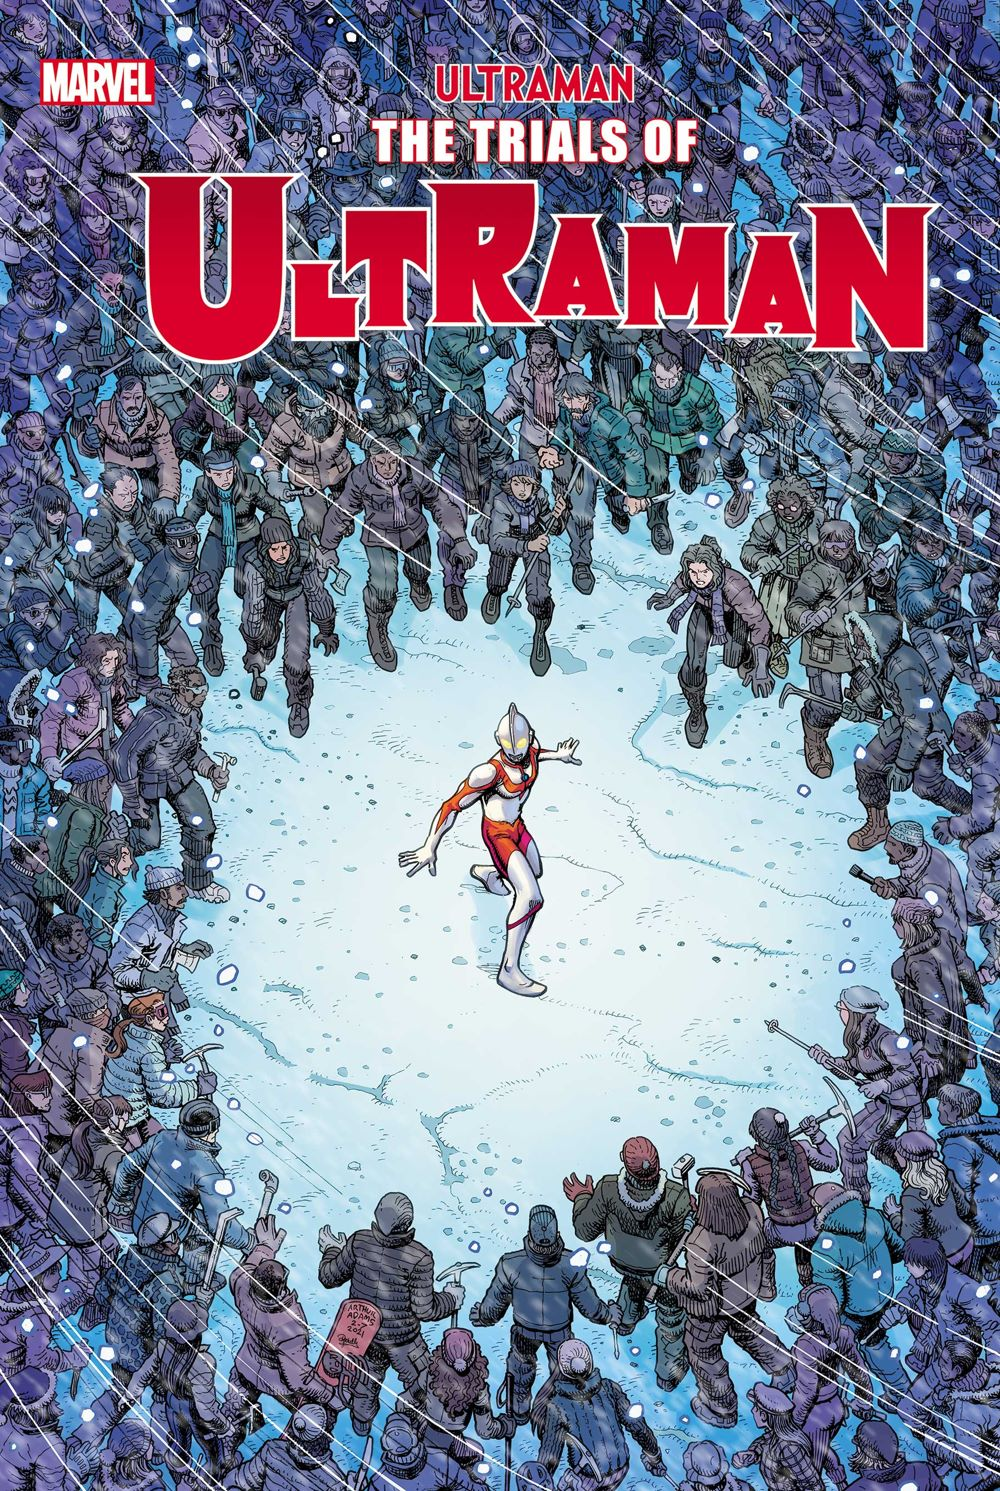 ULTRAMANTRIALS2021004_Cov Marvel Comics July 2021 Solicitations